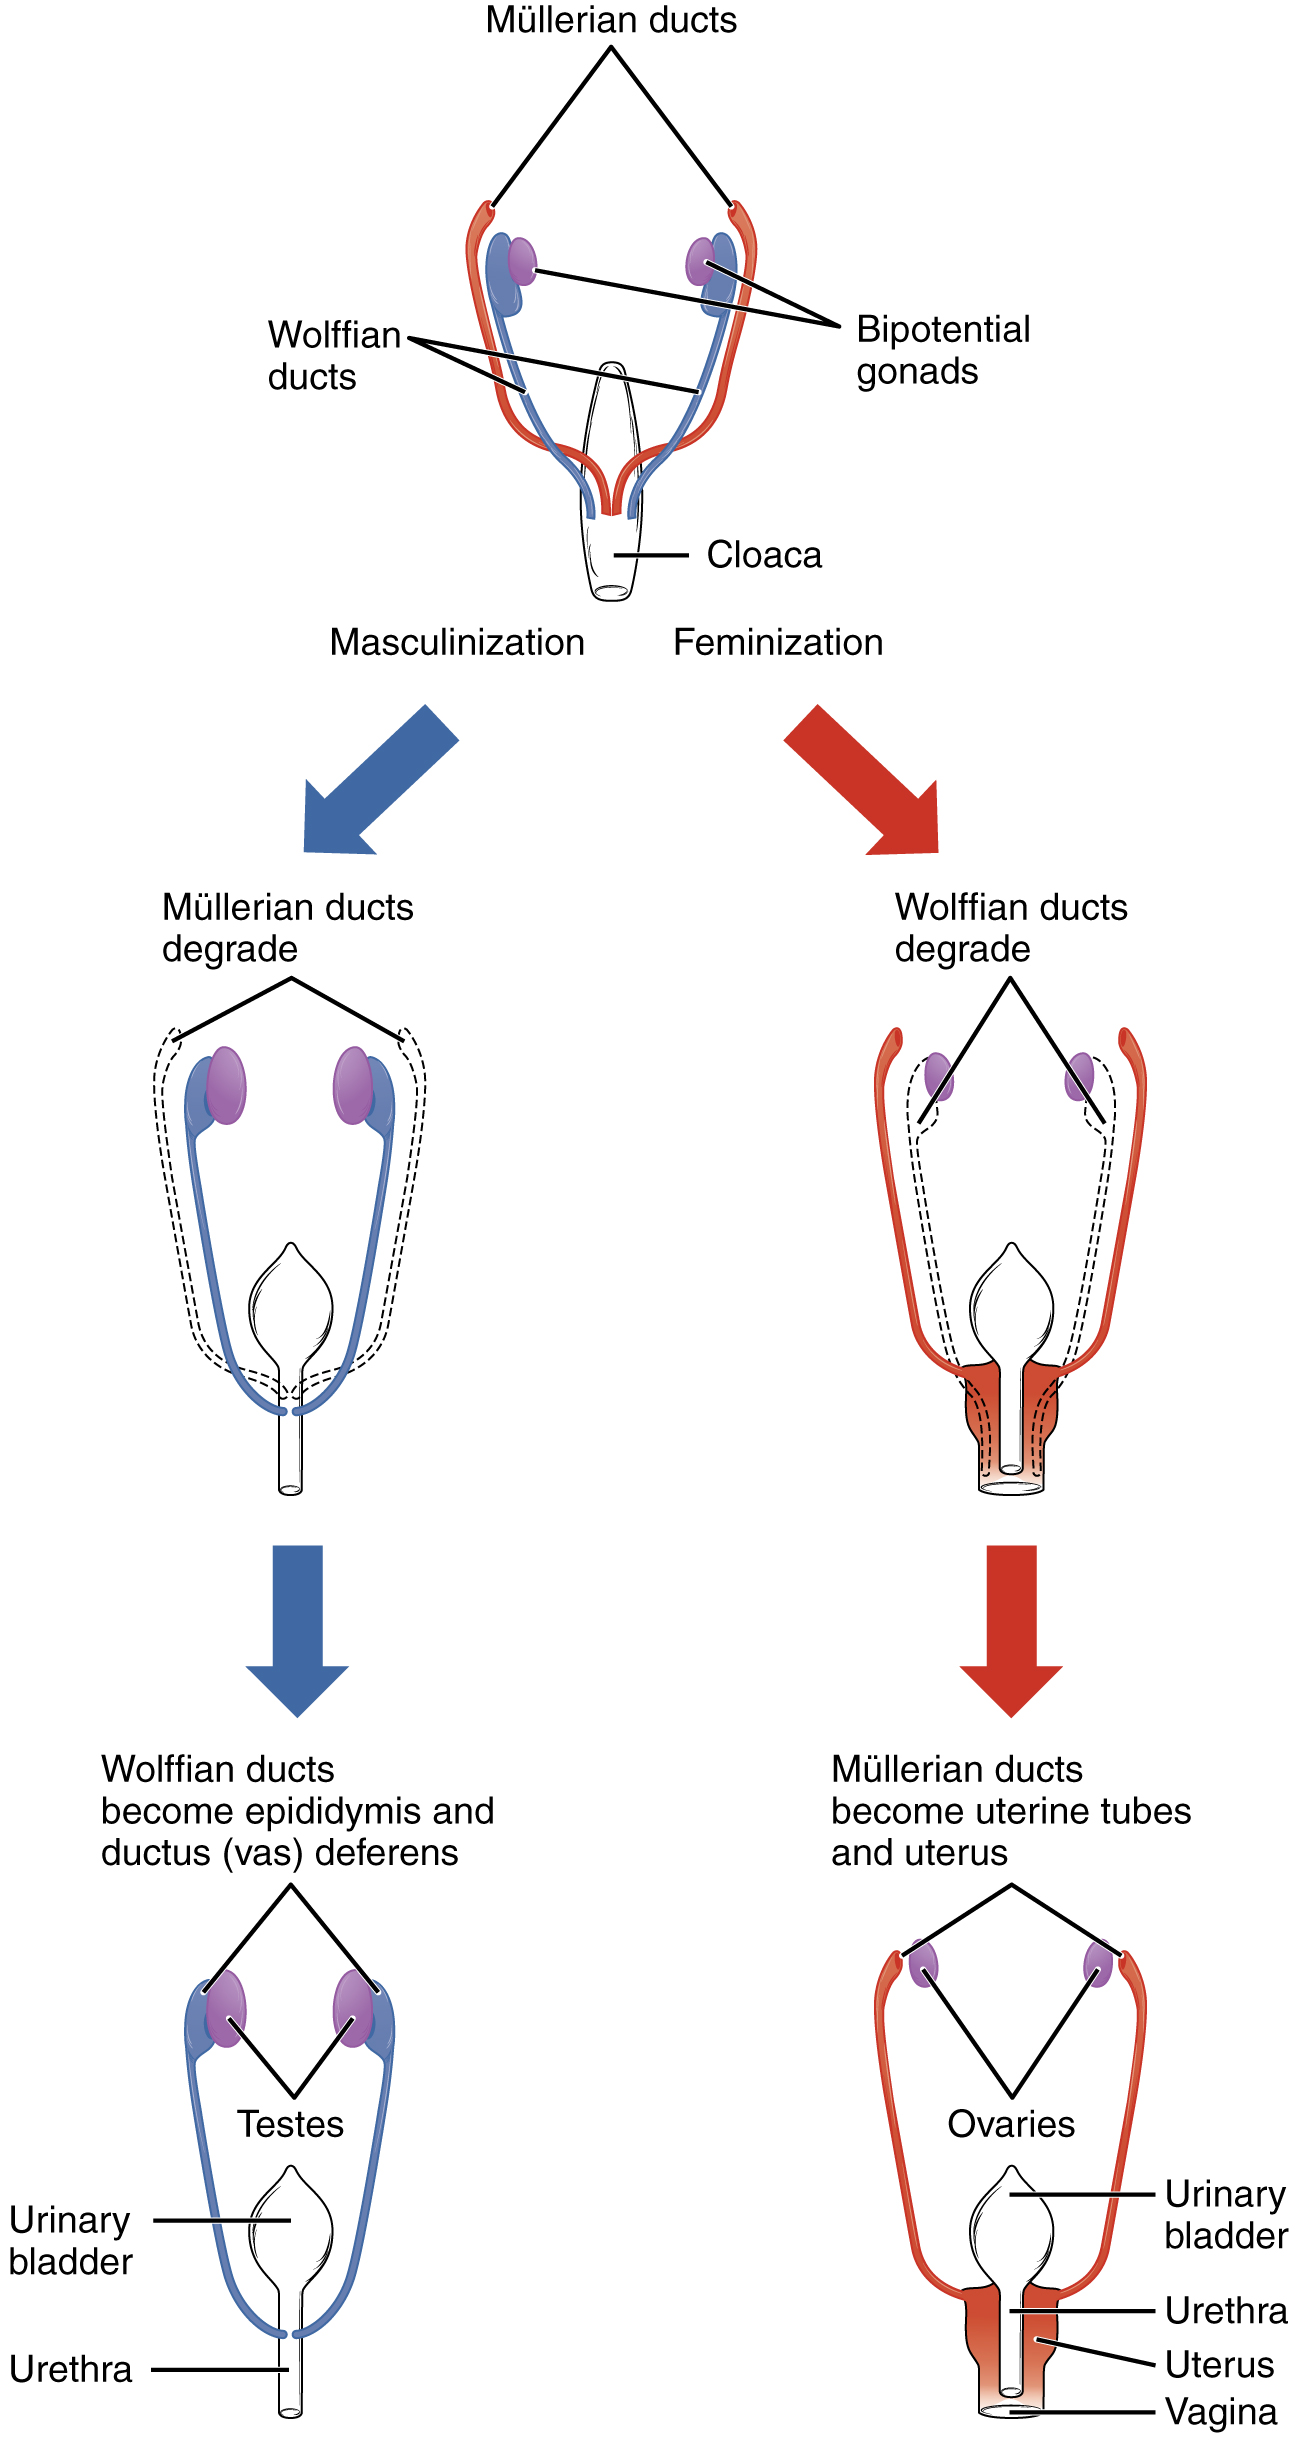 What is cellular maturation and functional definition called